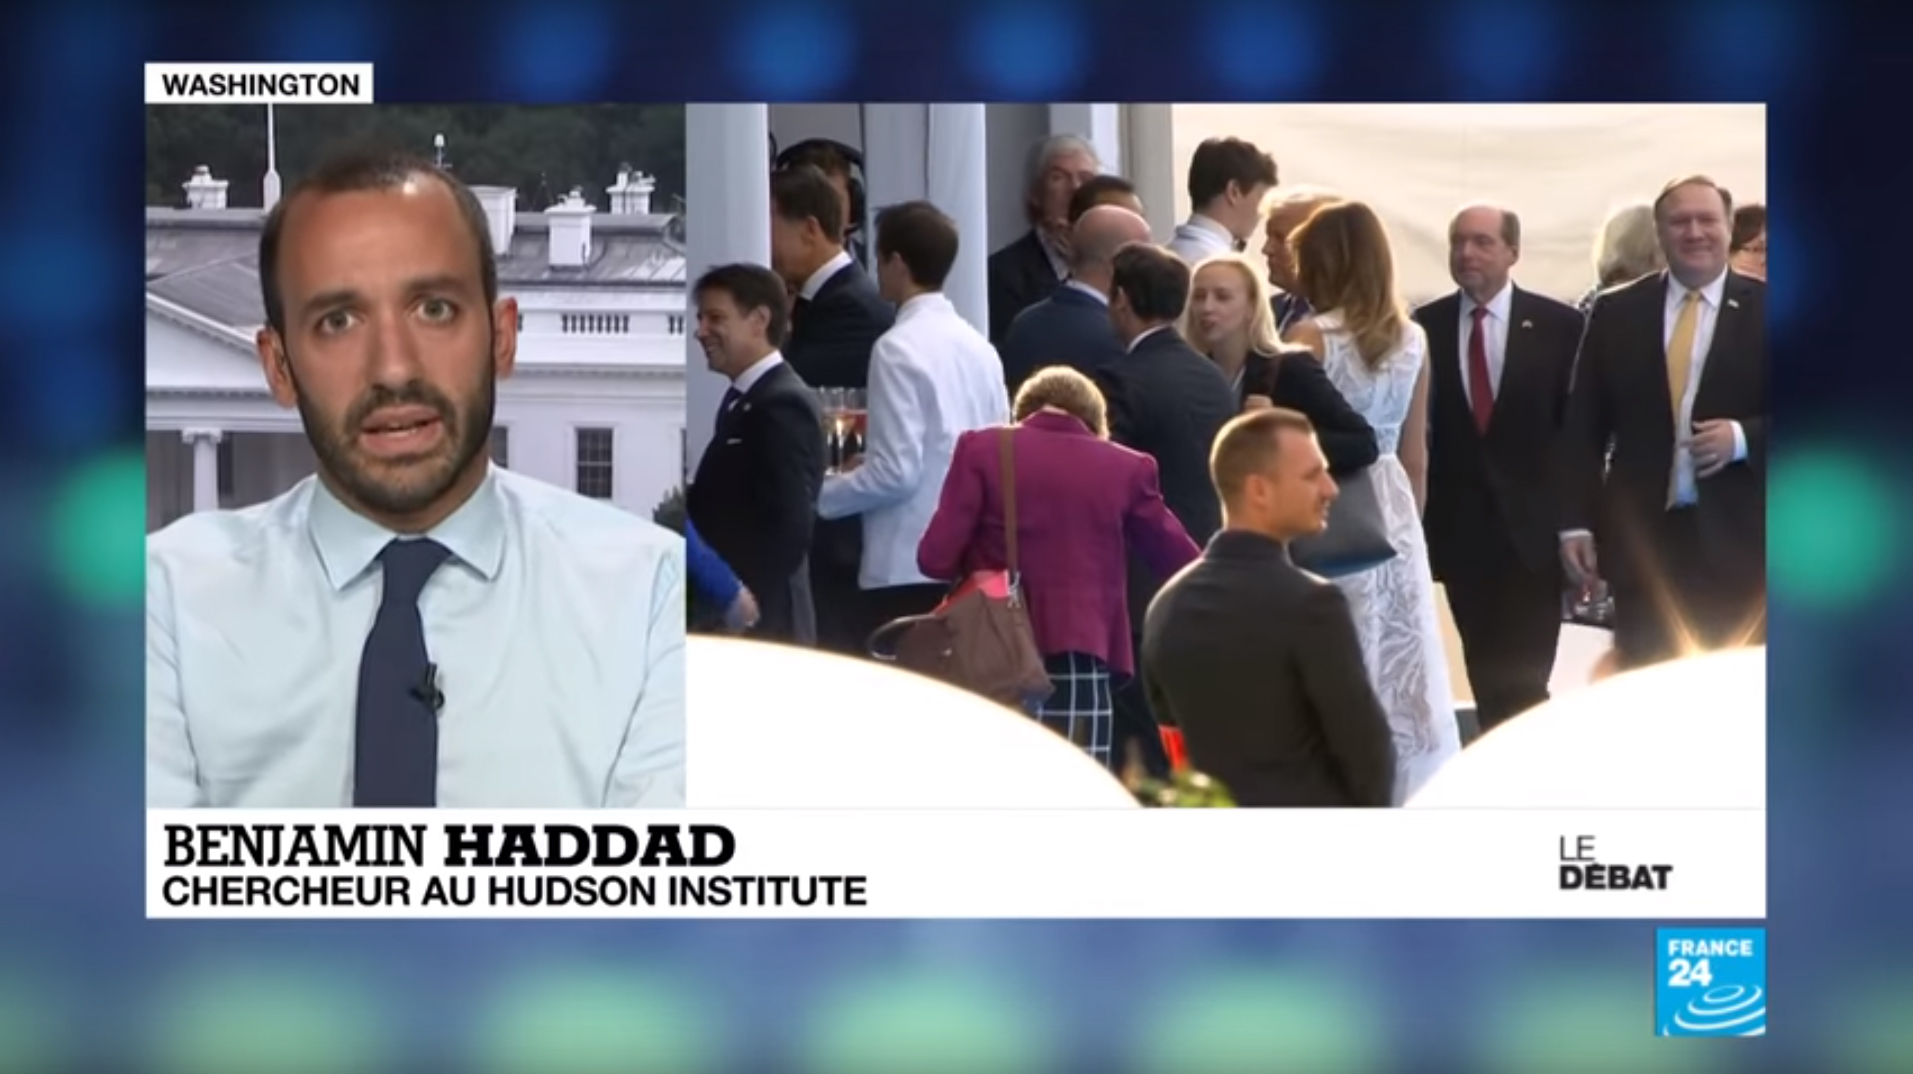 Benjamin Haddad on France 24, July 12, 2018